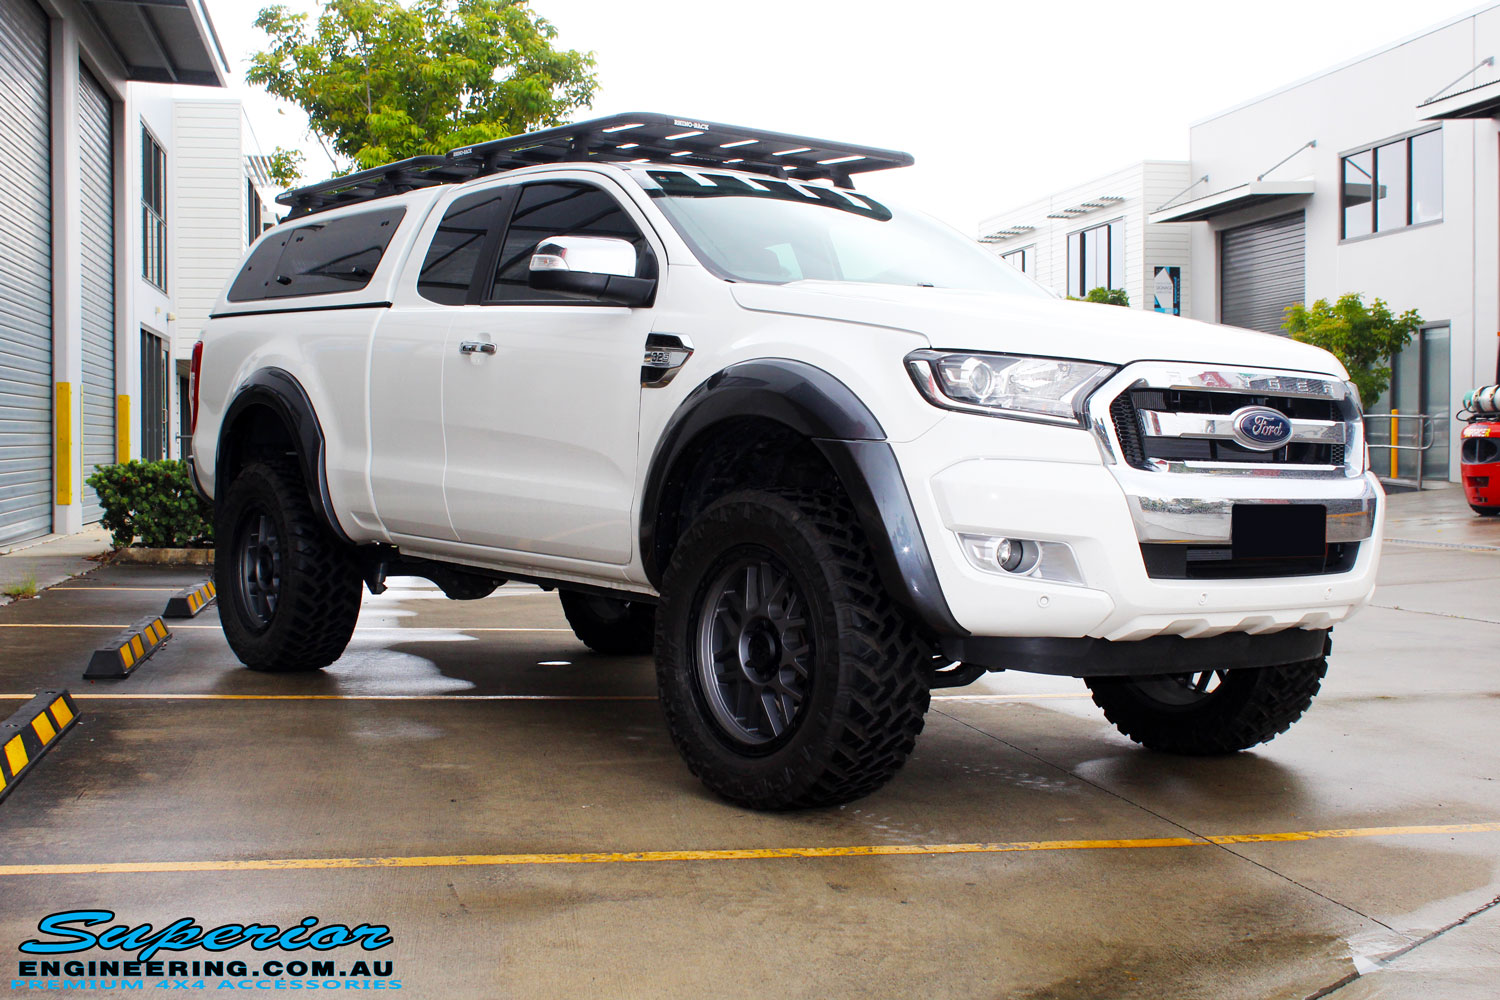 Right front side view of a White Ford PXII Ranger after fitment of the Superior Diff Drop Kit